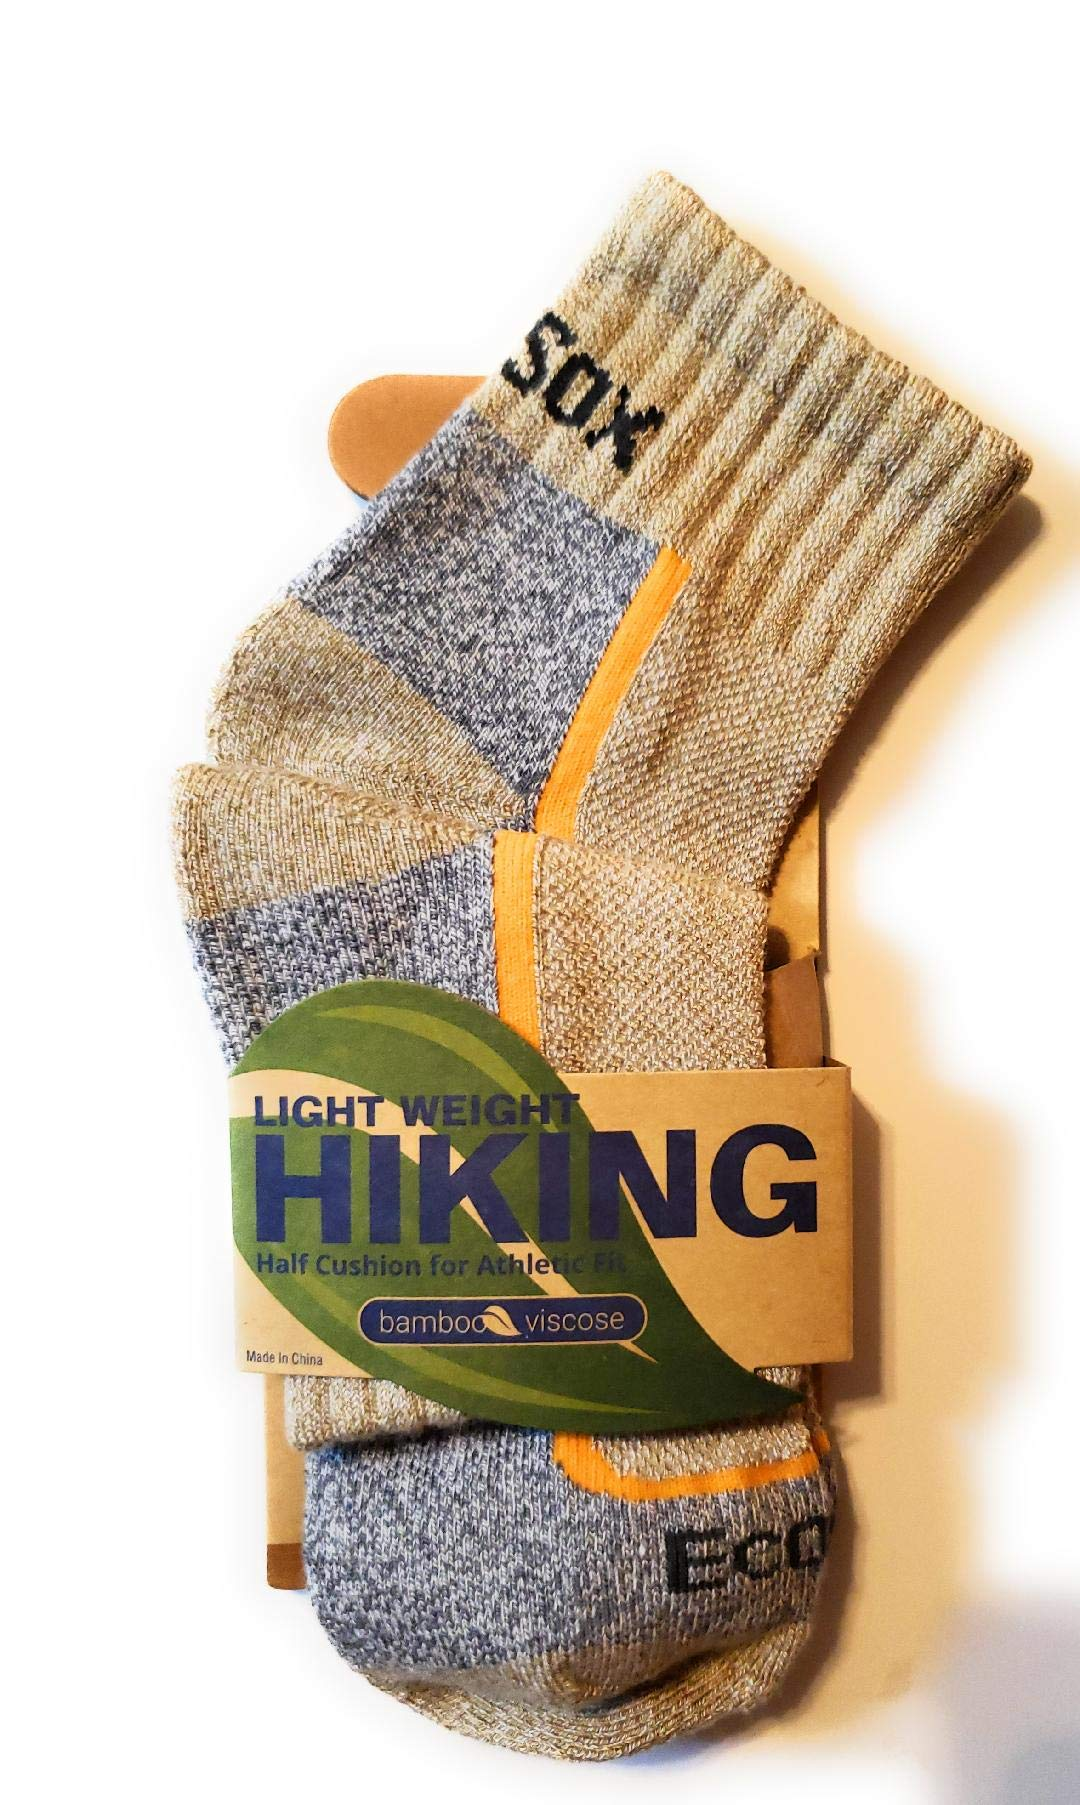 EcoSox Bamboo Viscose - Active Sport Light Weight Quarter Hiking Sock - [ Quanity options ] (Medium 9-11 [one pair], Tan/Grey) by Ecosox